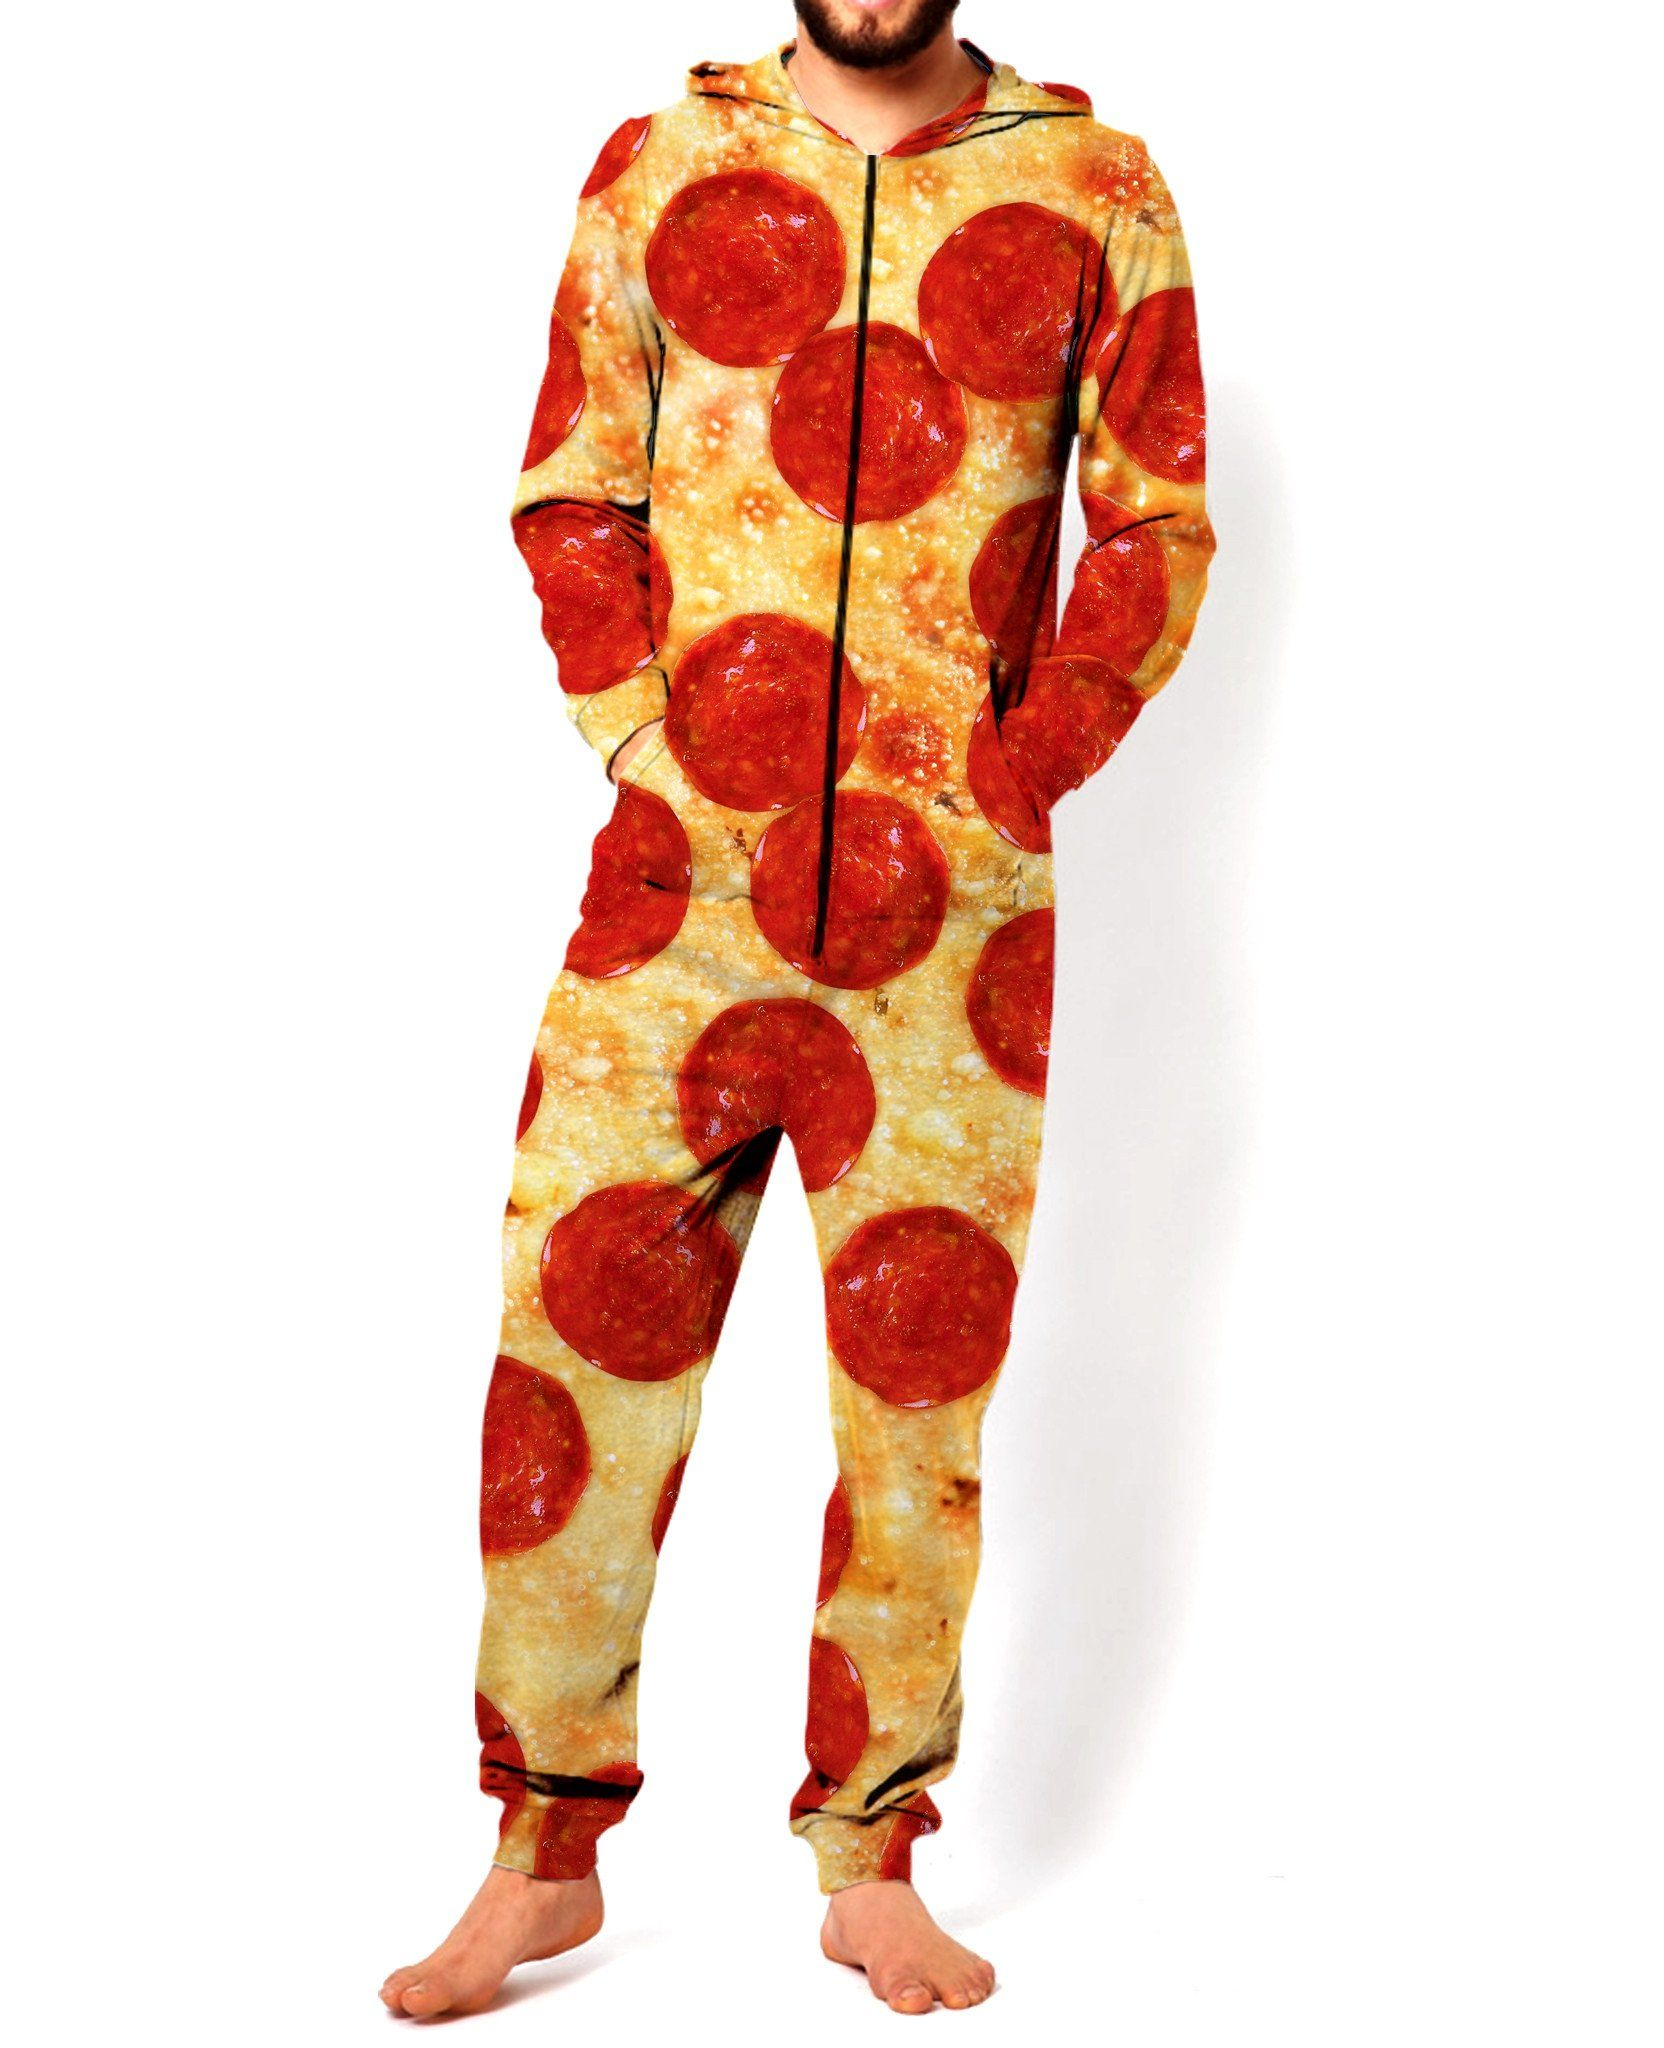 Pizza Jumpsuit Funny Pajamas For Men or Women. Reddit Tumblr Famous  Pepperoni Pizza Adult Onesie So Funny LOL Meme Save 10% with code  IAMCOUPON 8d8c39dd0